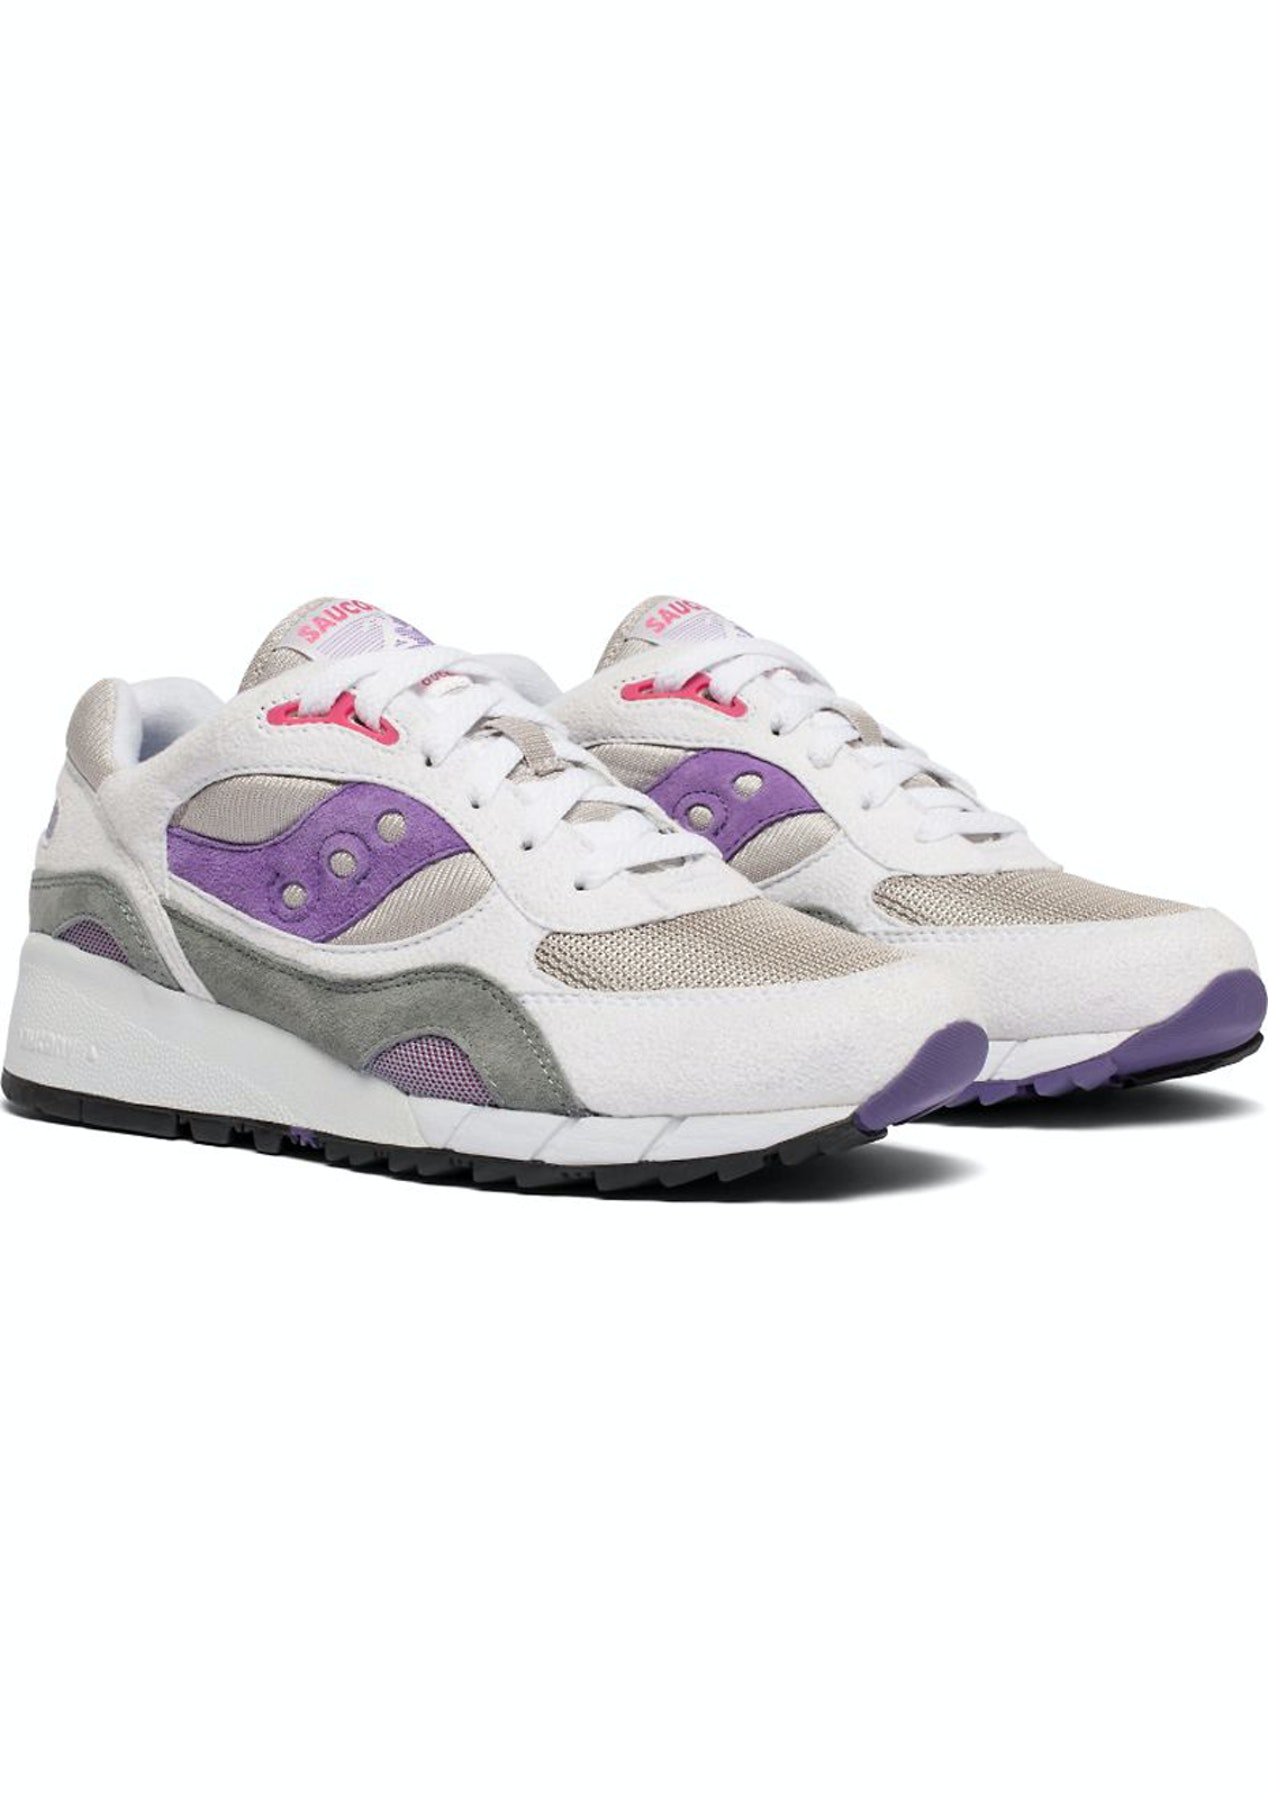 new product acd81 7a0f0 Saucony - Shadow 6000 - White/Grey/Purple